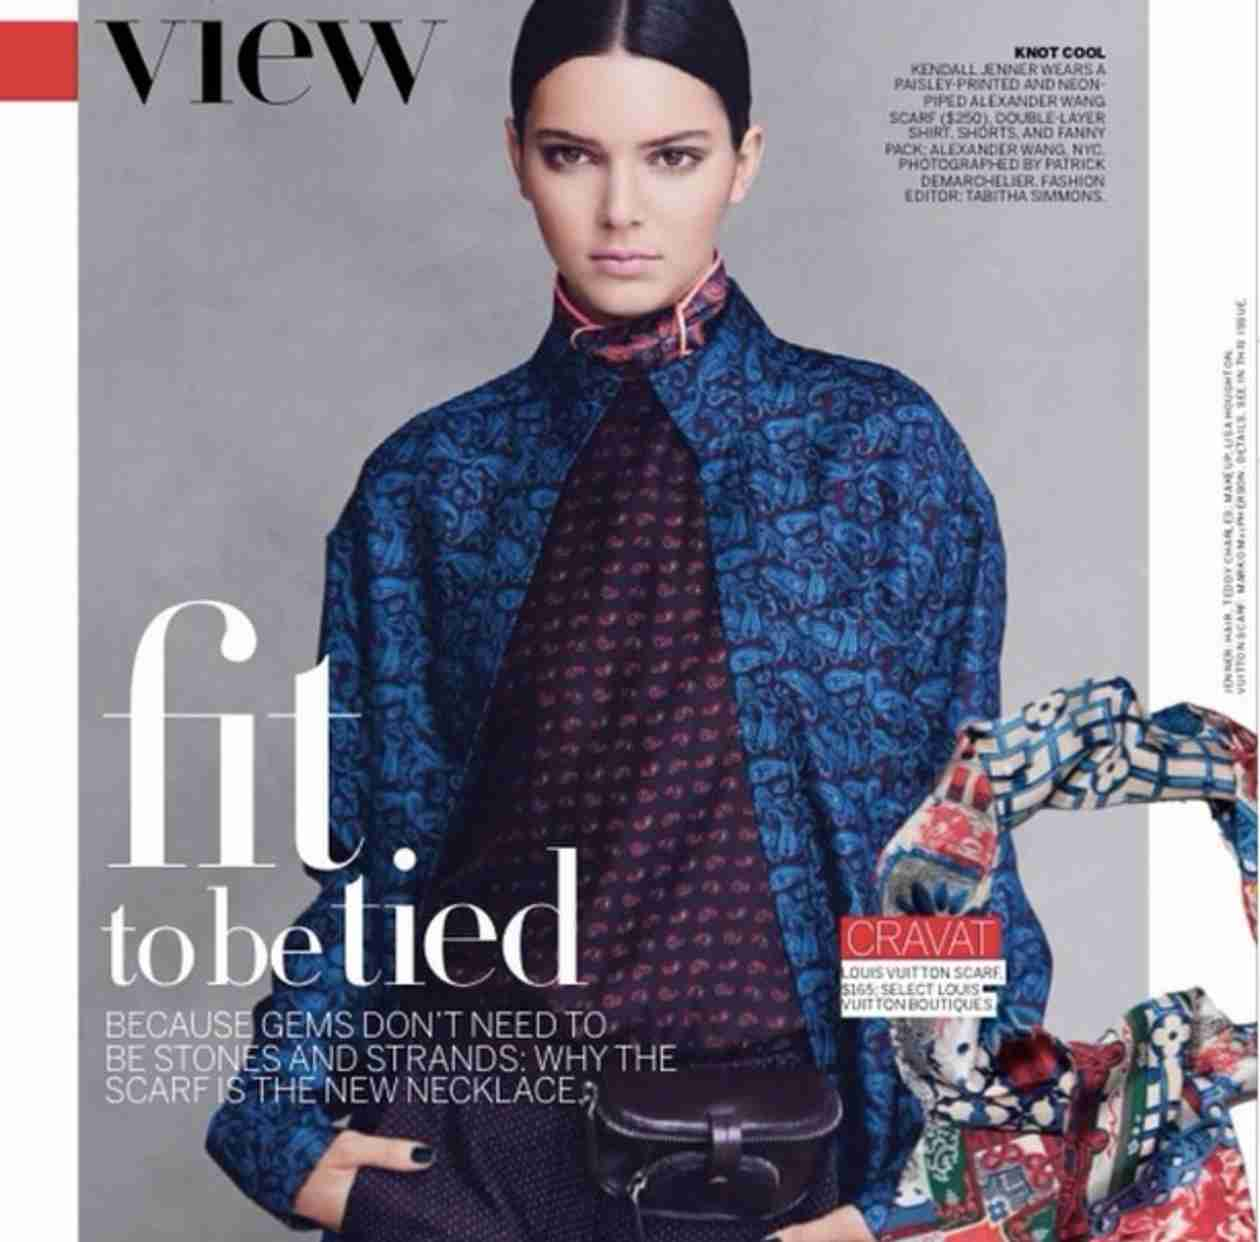 Kendall Jenner Wows in First Photos For Vogue Magazine